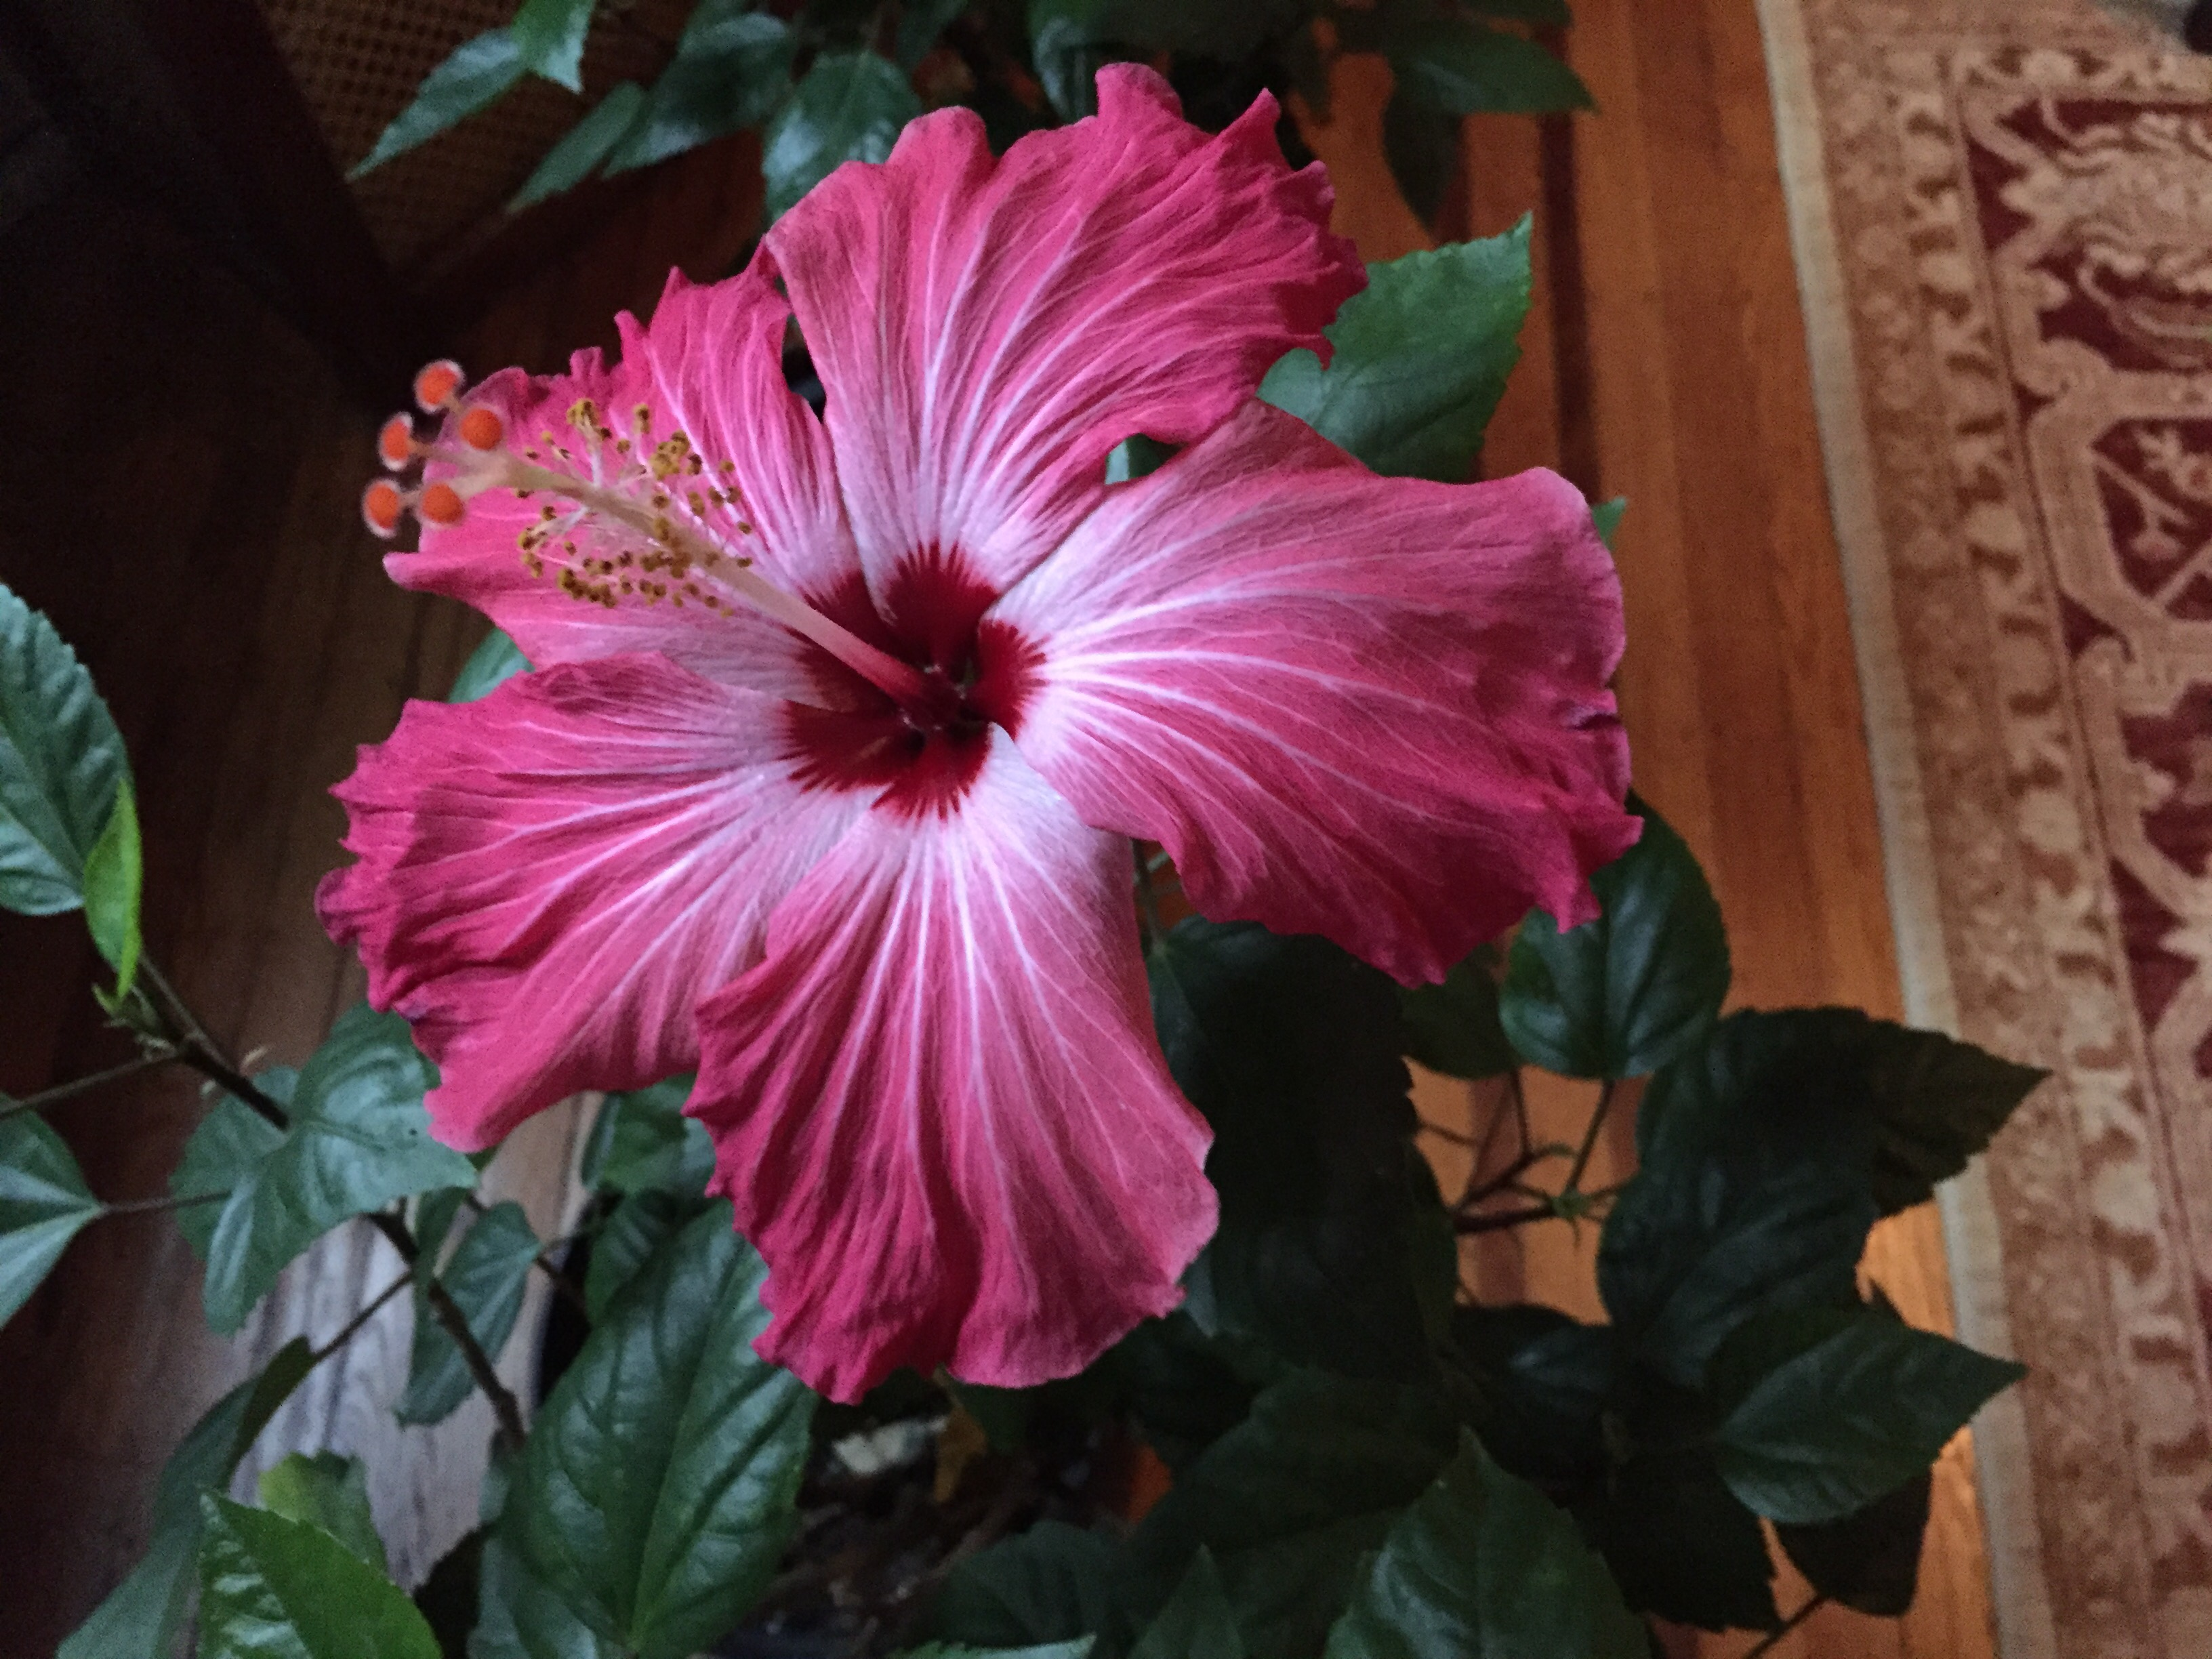 Hibiscus laurieanichols believe it or these are the first blooms she has gotten all year inside or out at least she finally got blossoms the wait was more than worth izmirmasajfo